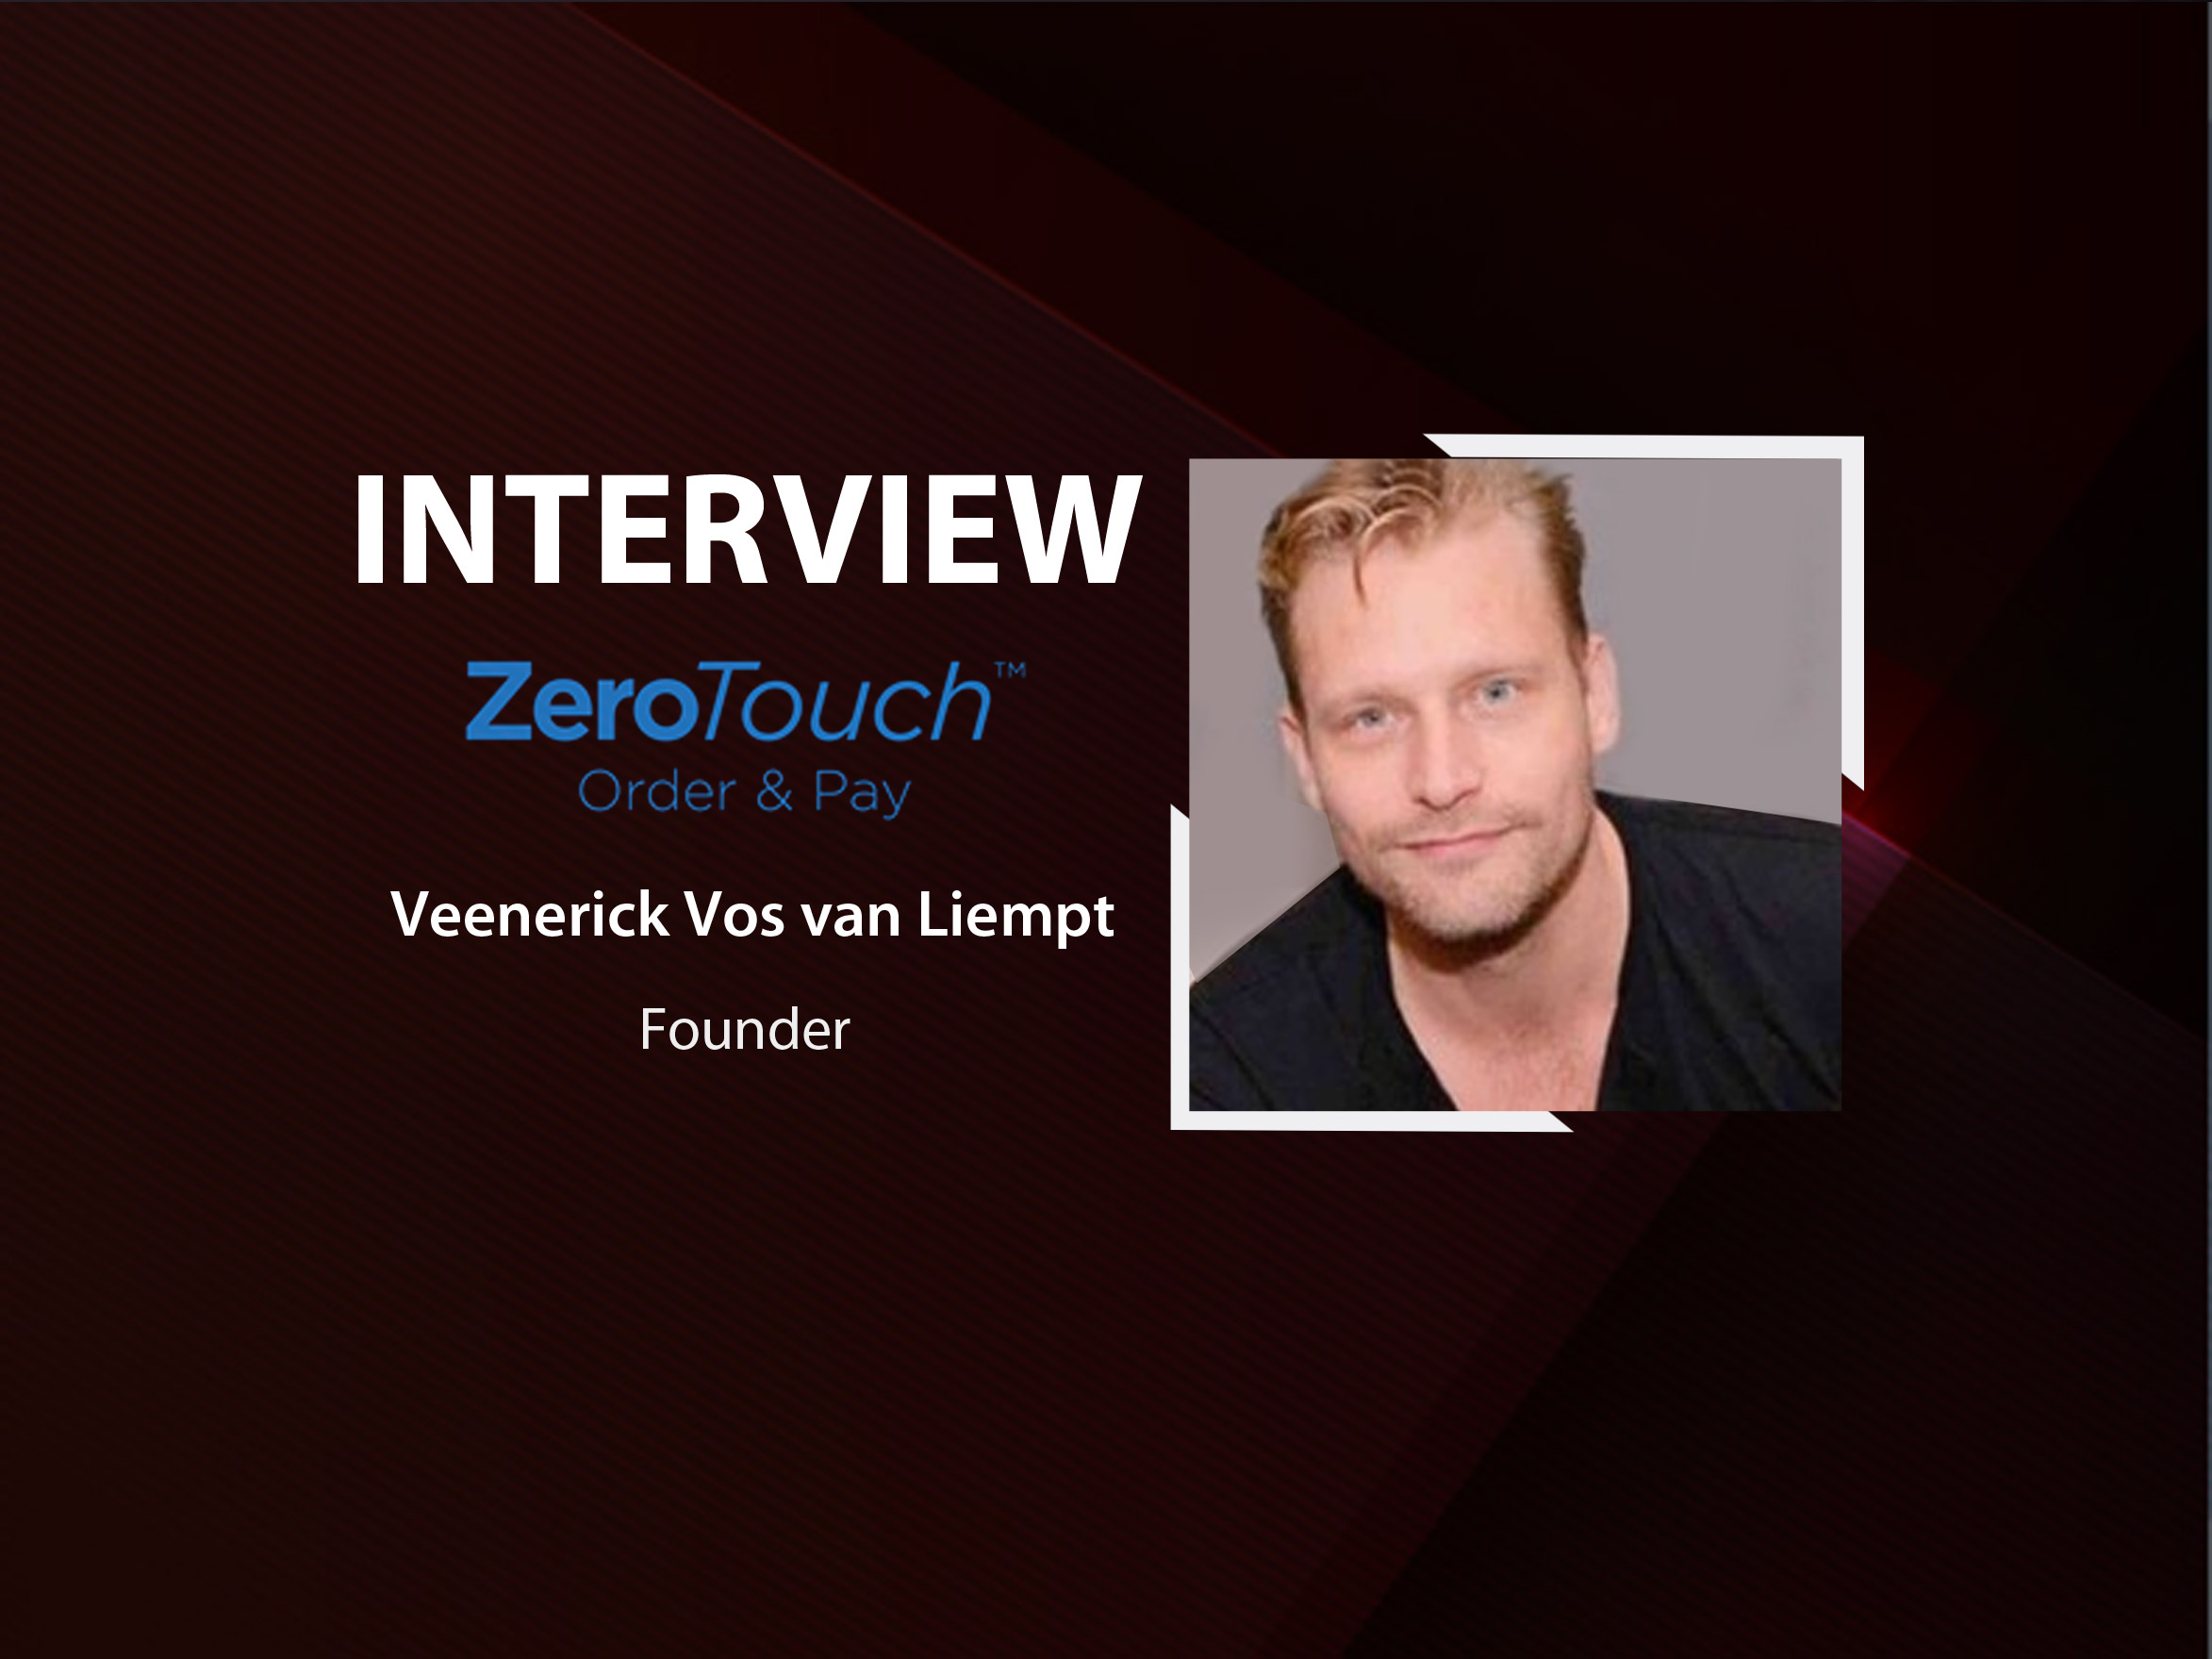 GlobalFintechSeries Interview with Veenerick Vos van Liempt, Founder, CEO at ZeroTouch Order and Pay